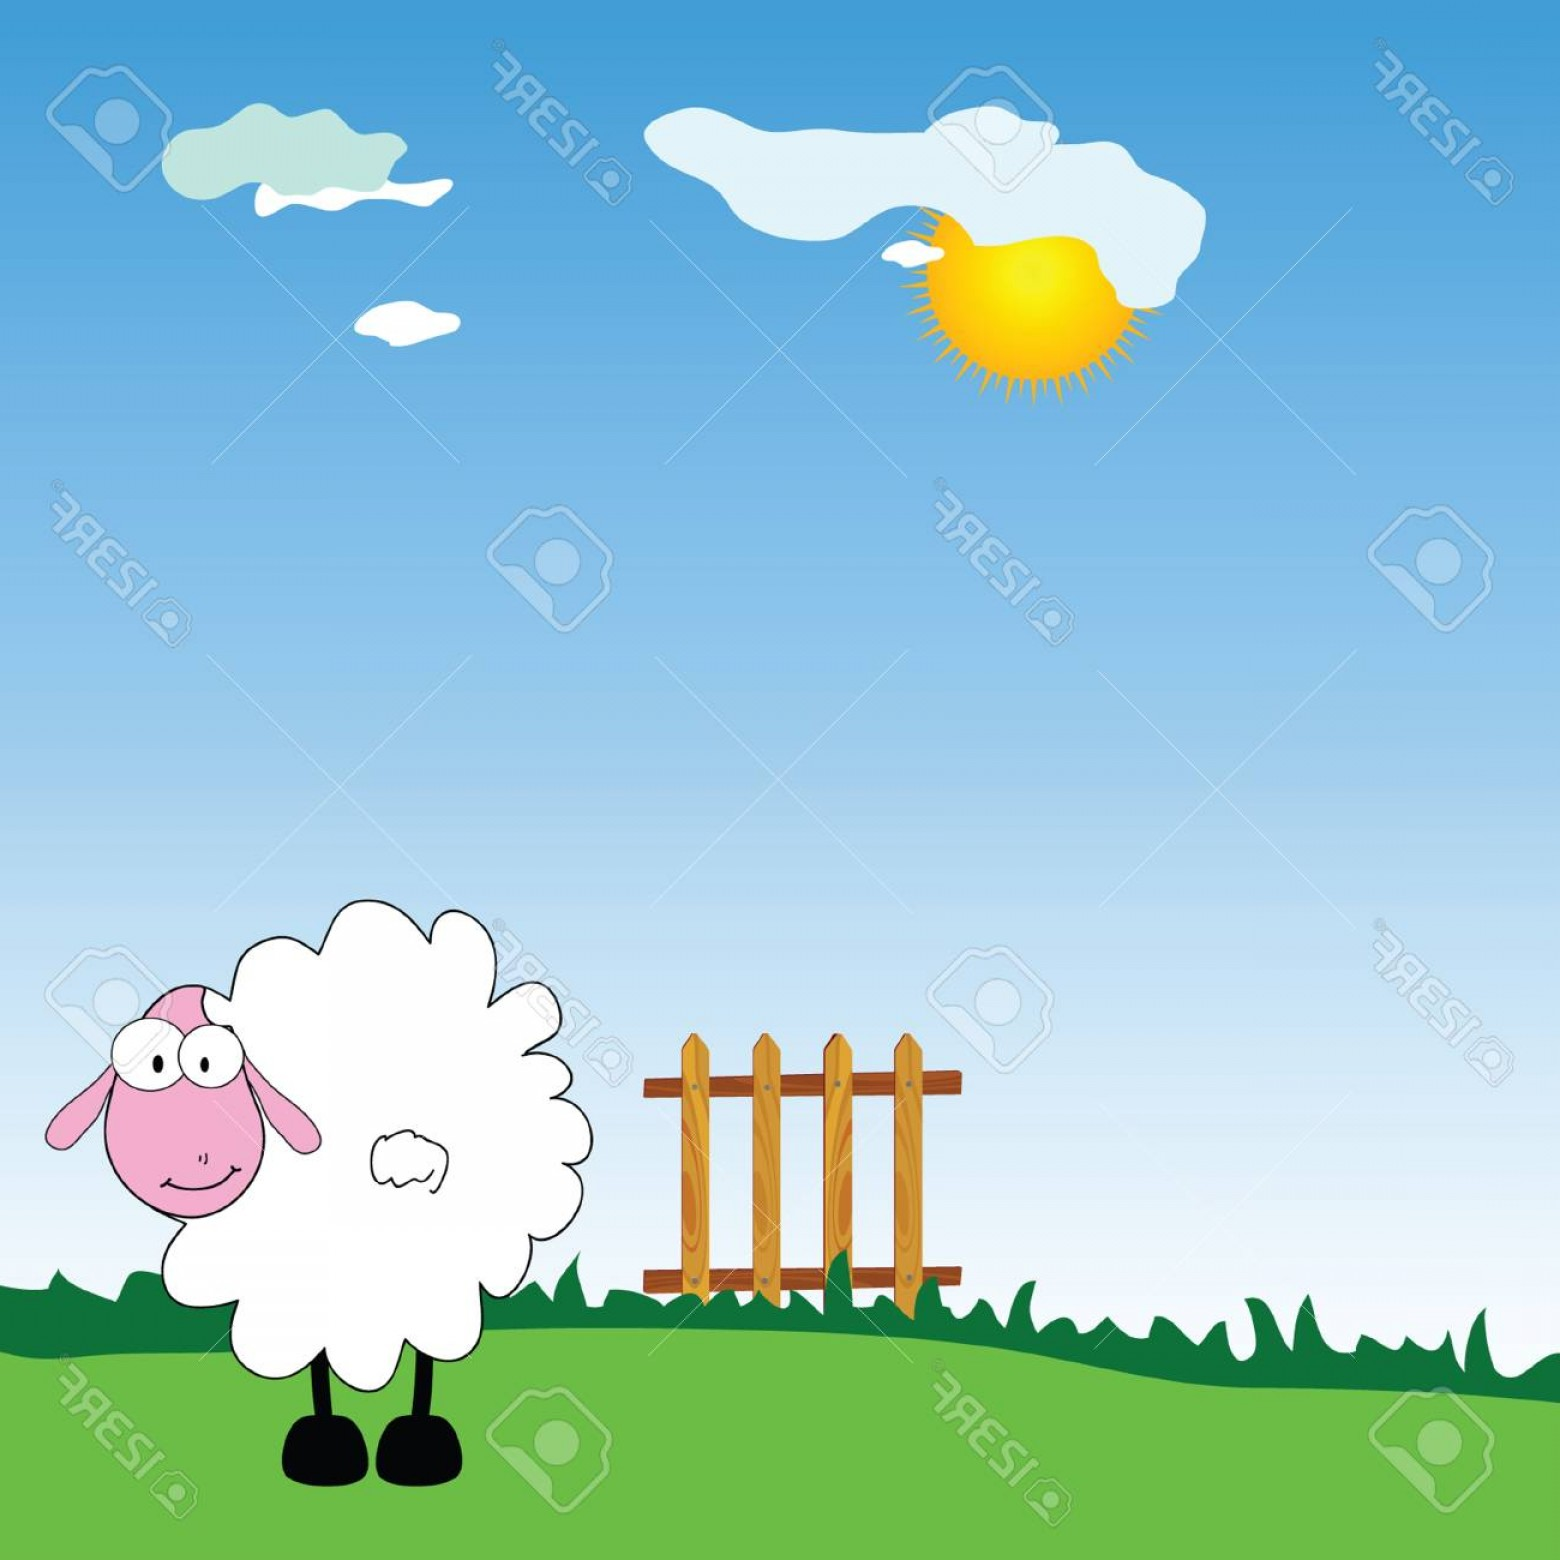 Farm Vector Illustration: Photostock Vector Sheep On The Farm Vector Illustration On Green Grass